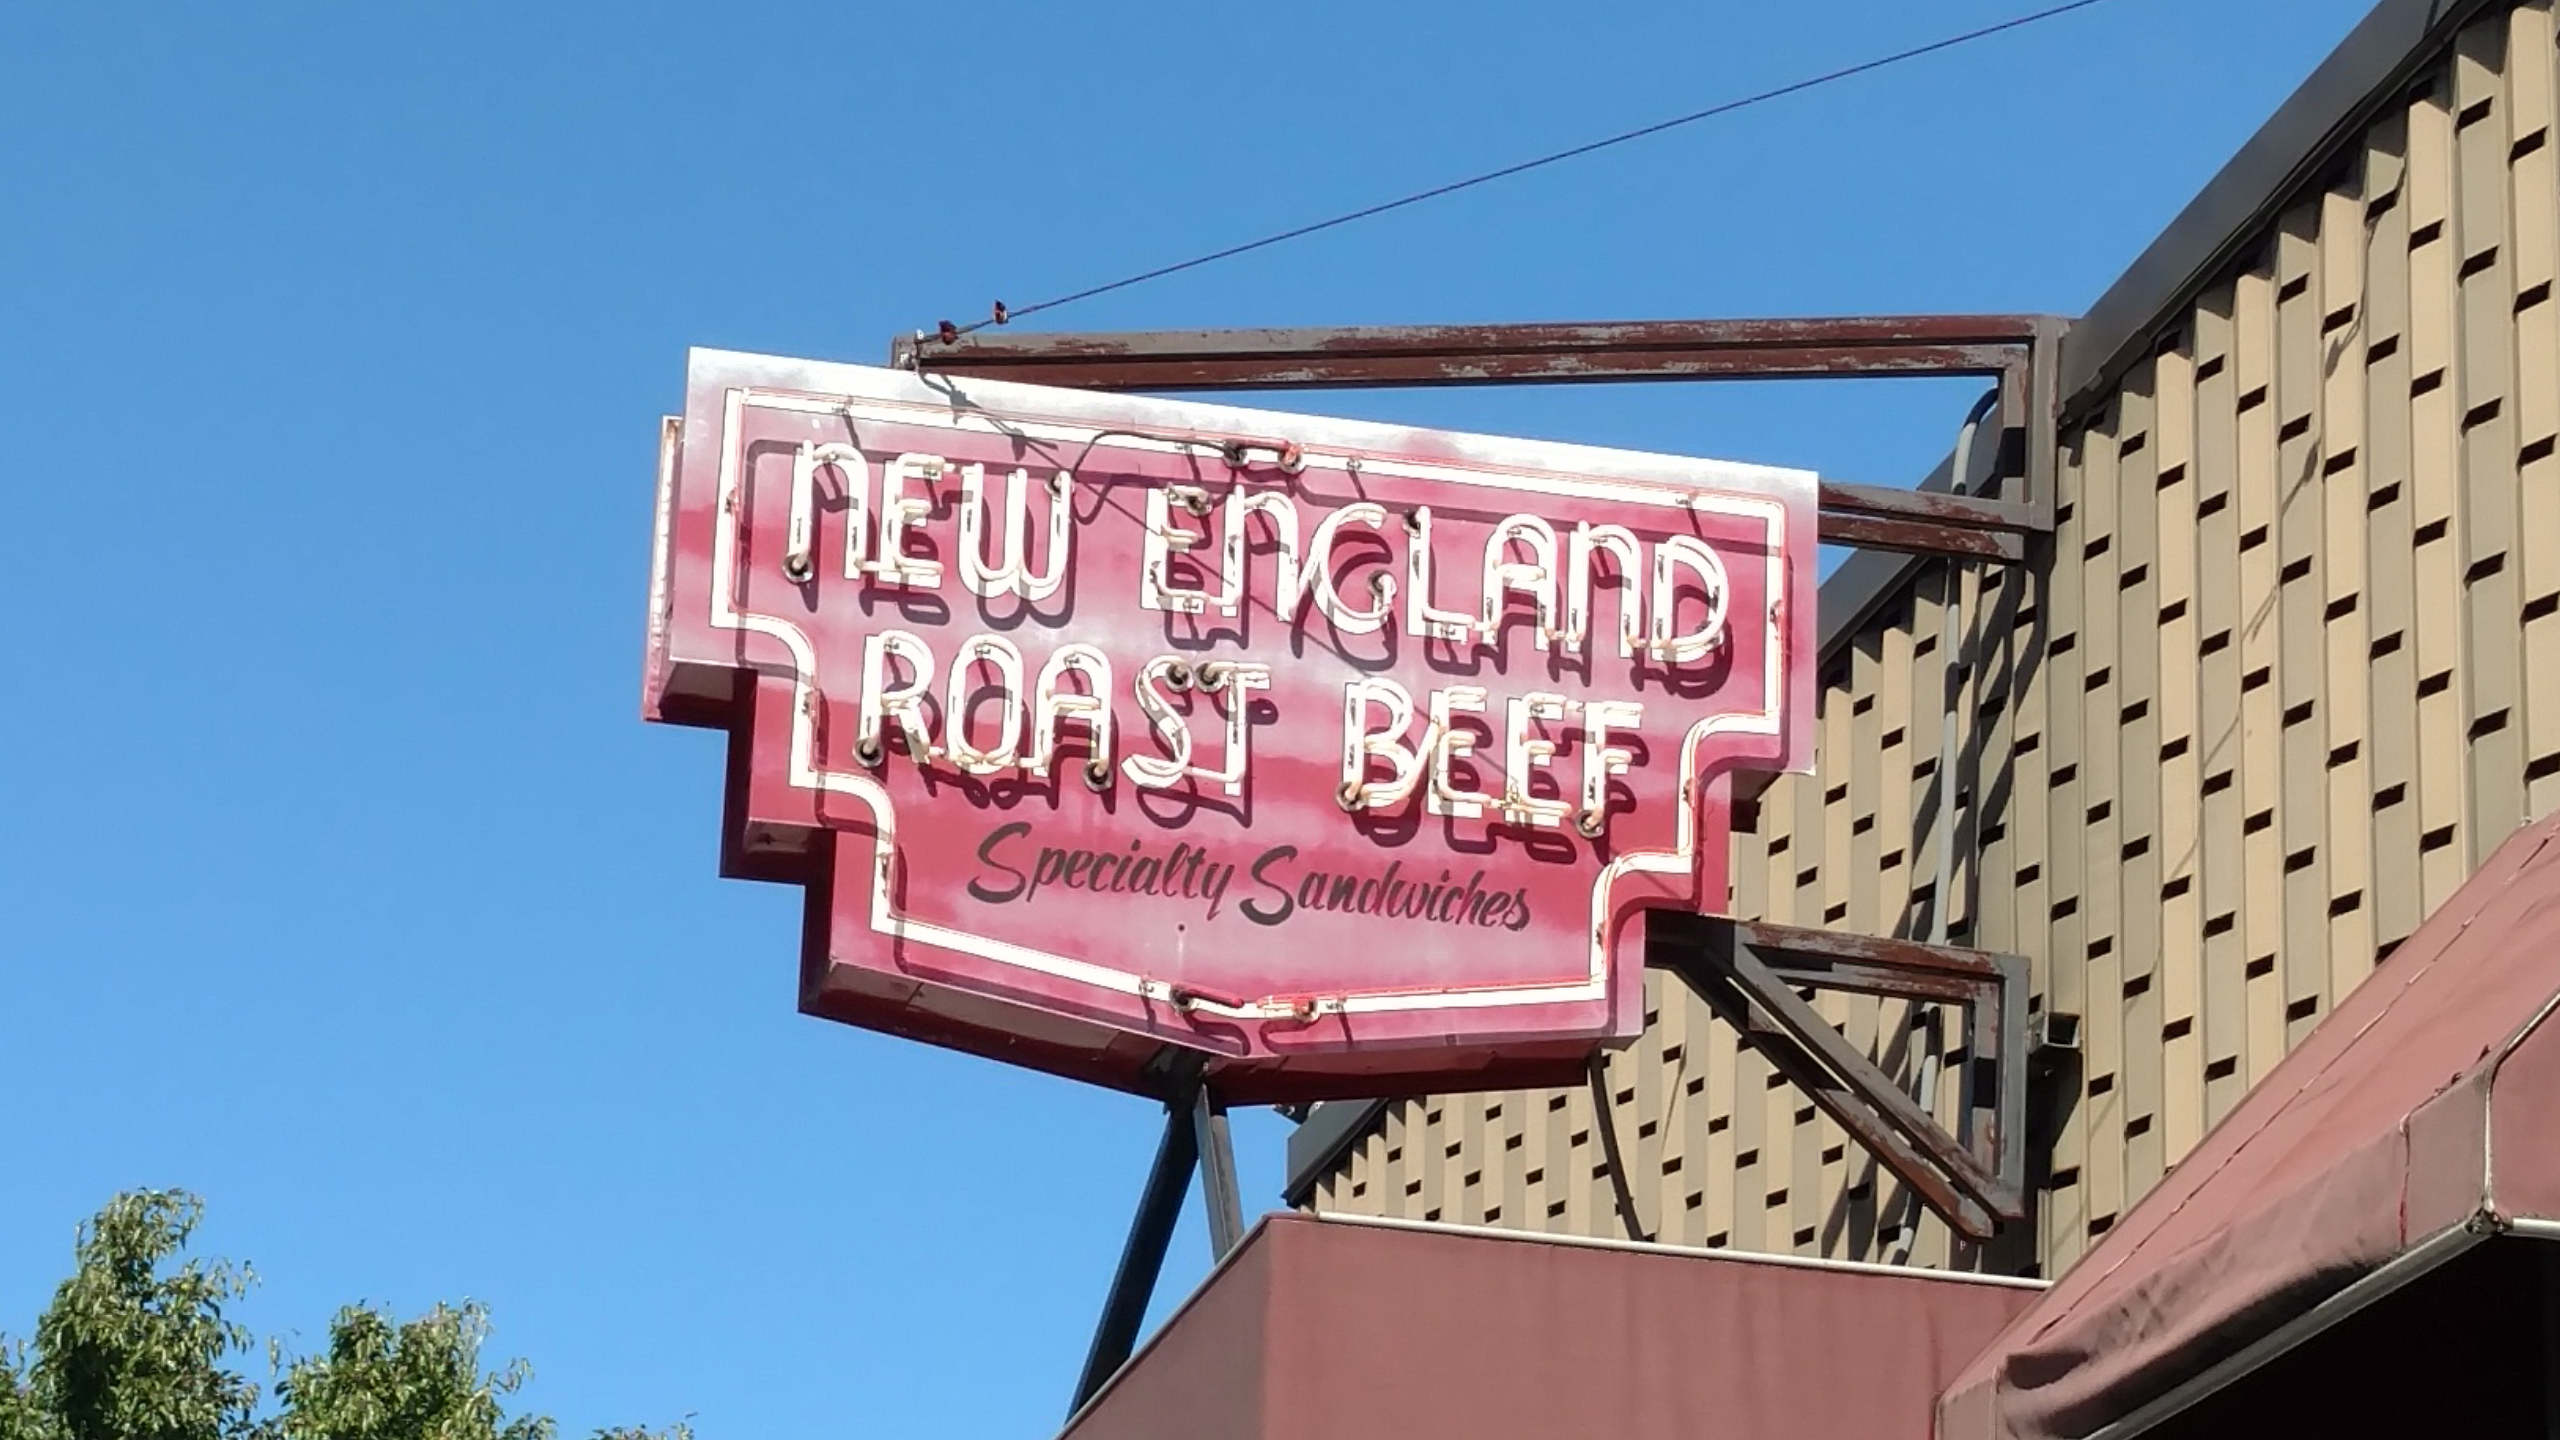 New England Roast Beef, Park Ave, Worcester